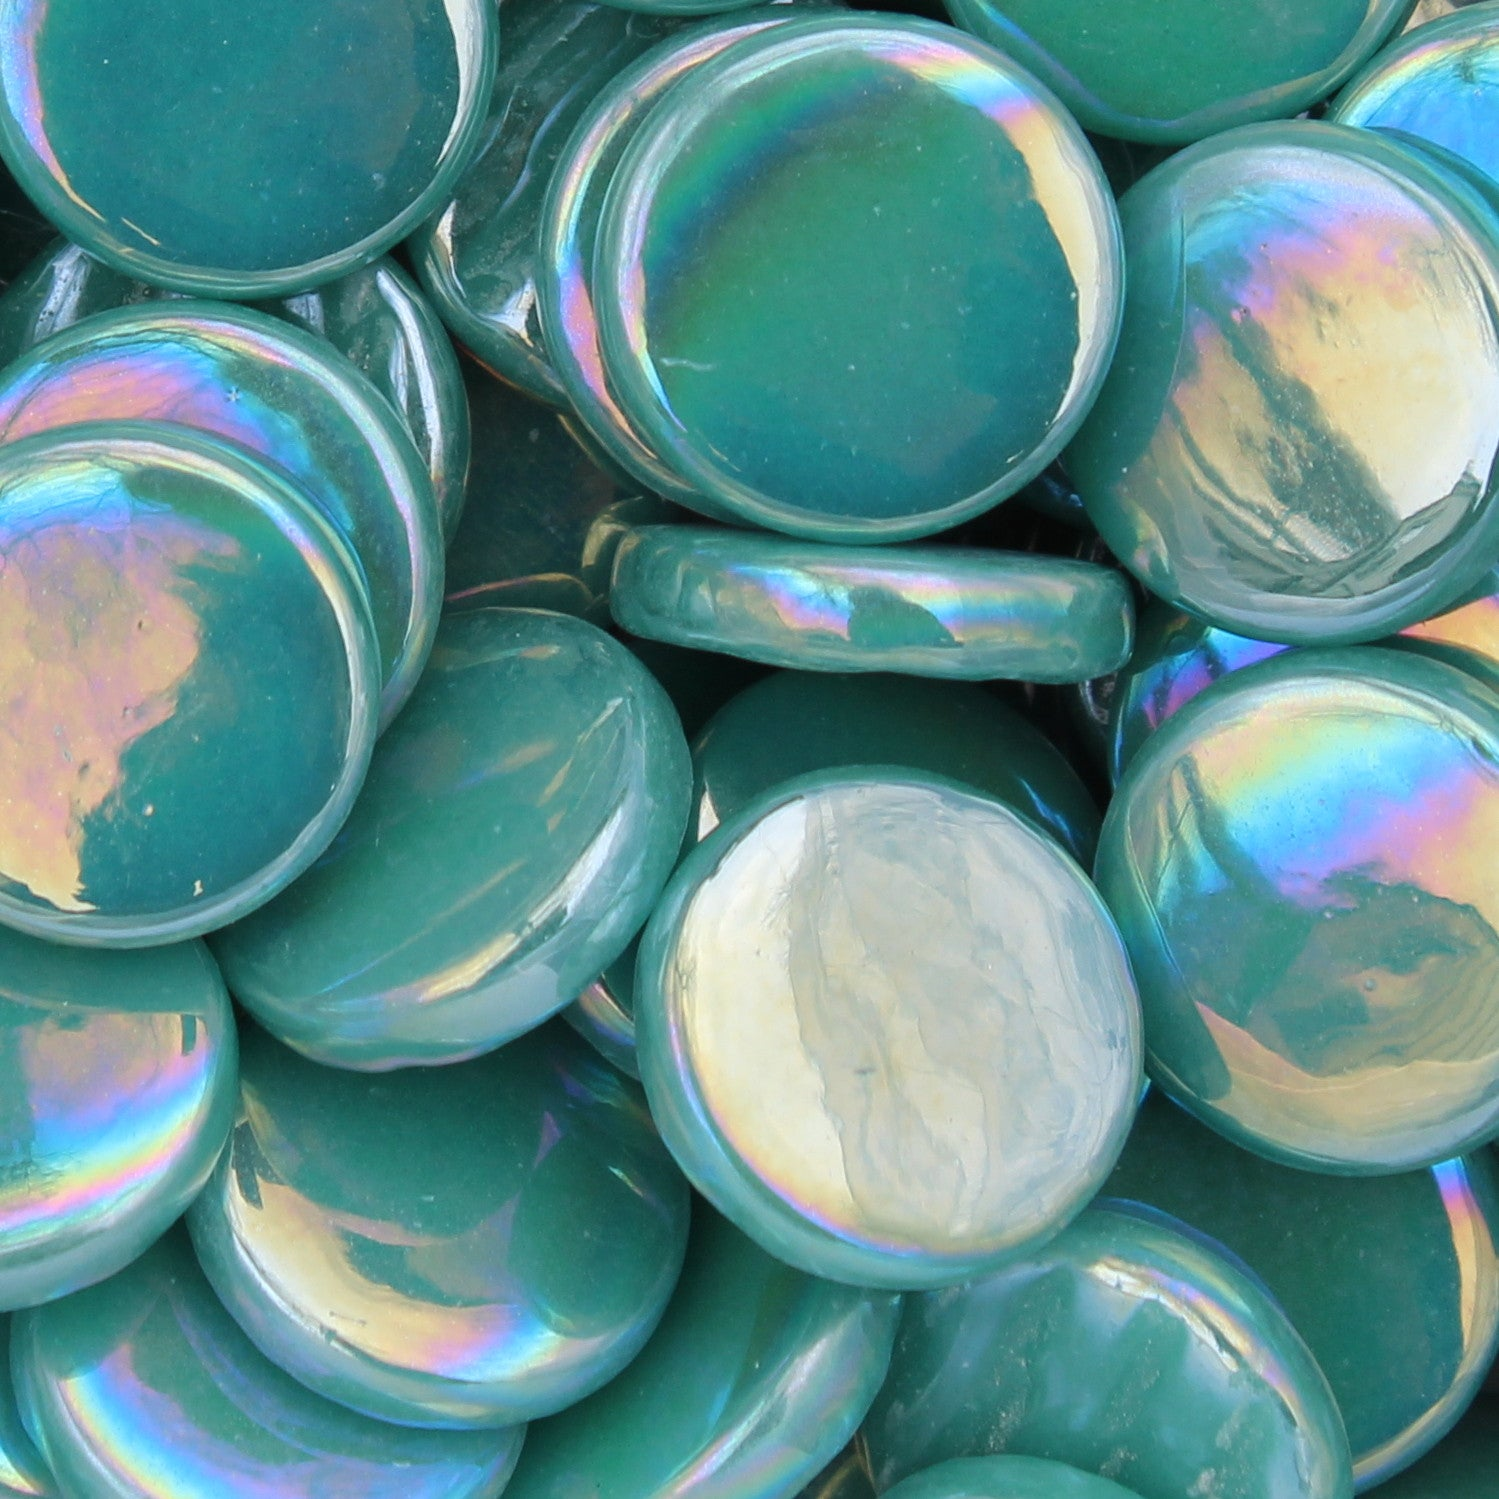 214-i - Teal - Iridescent, PennyRoundIrid tile - Kismet Mosaic - mosaic supplies